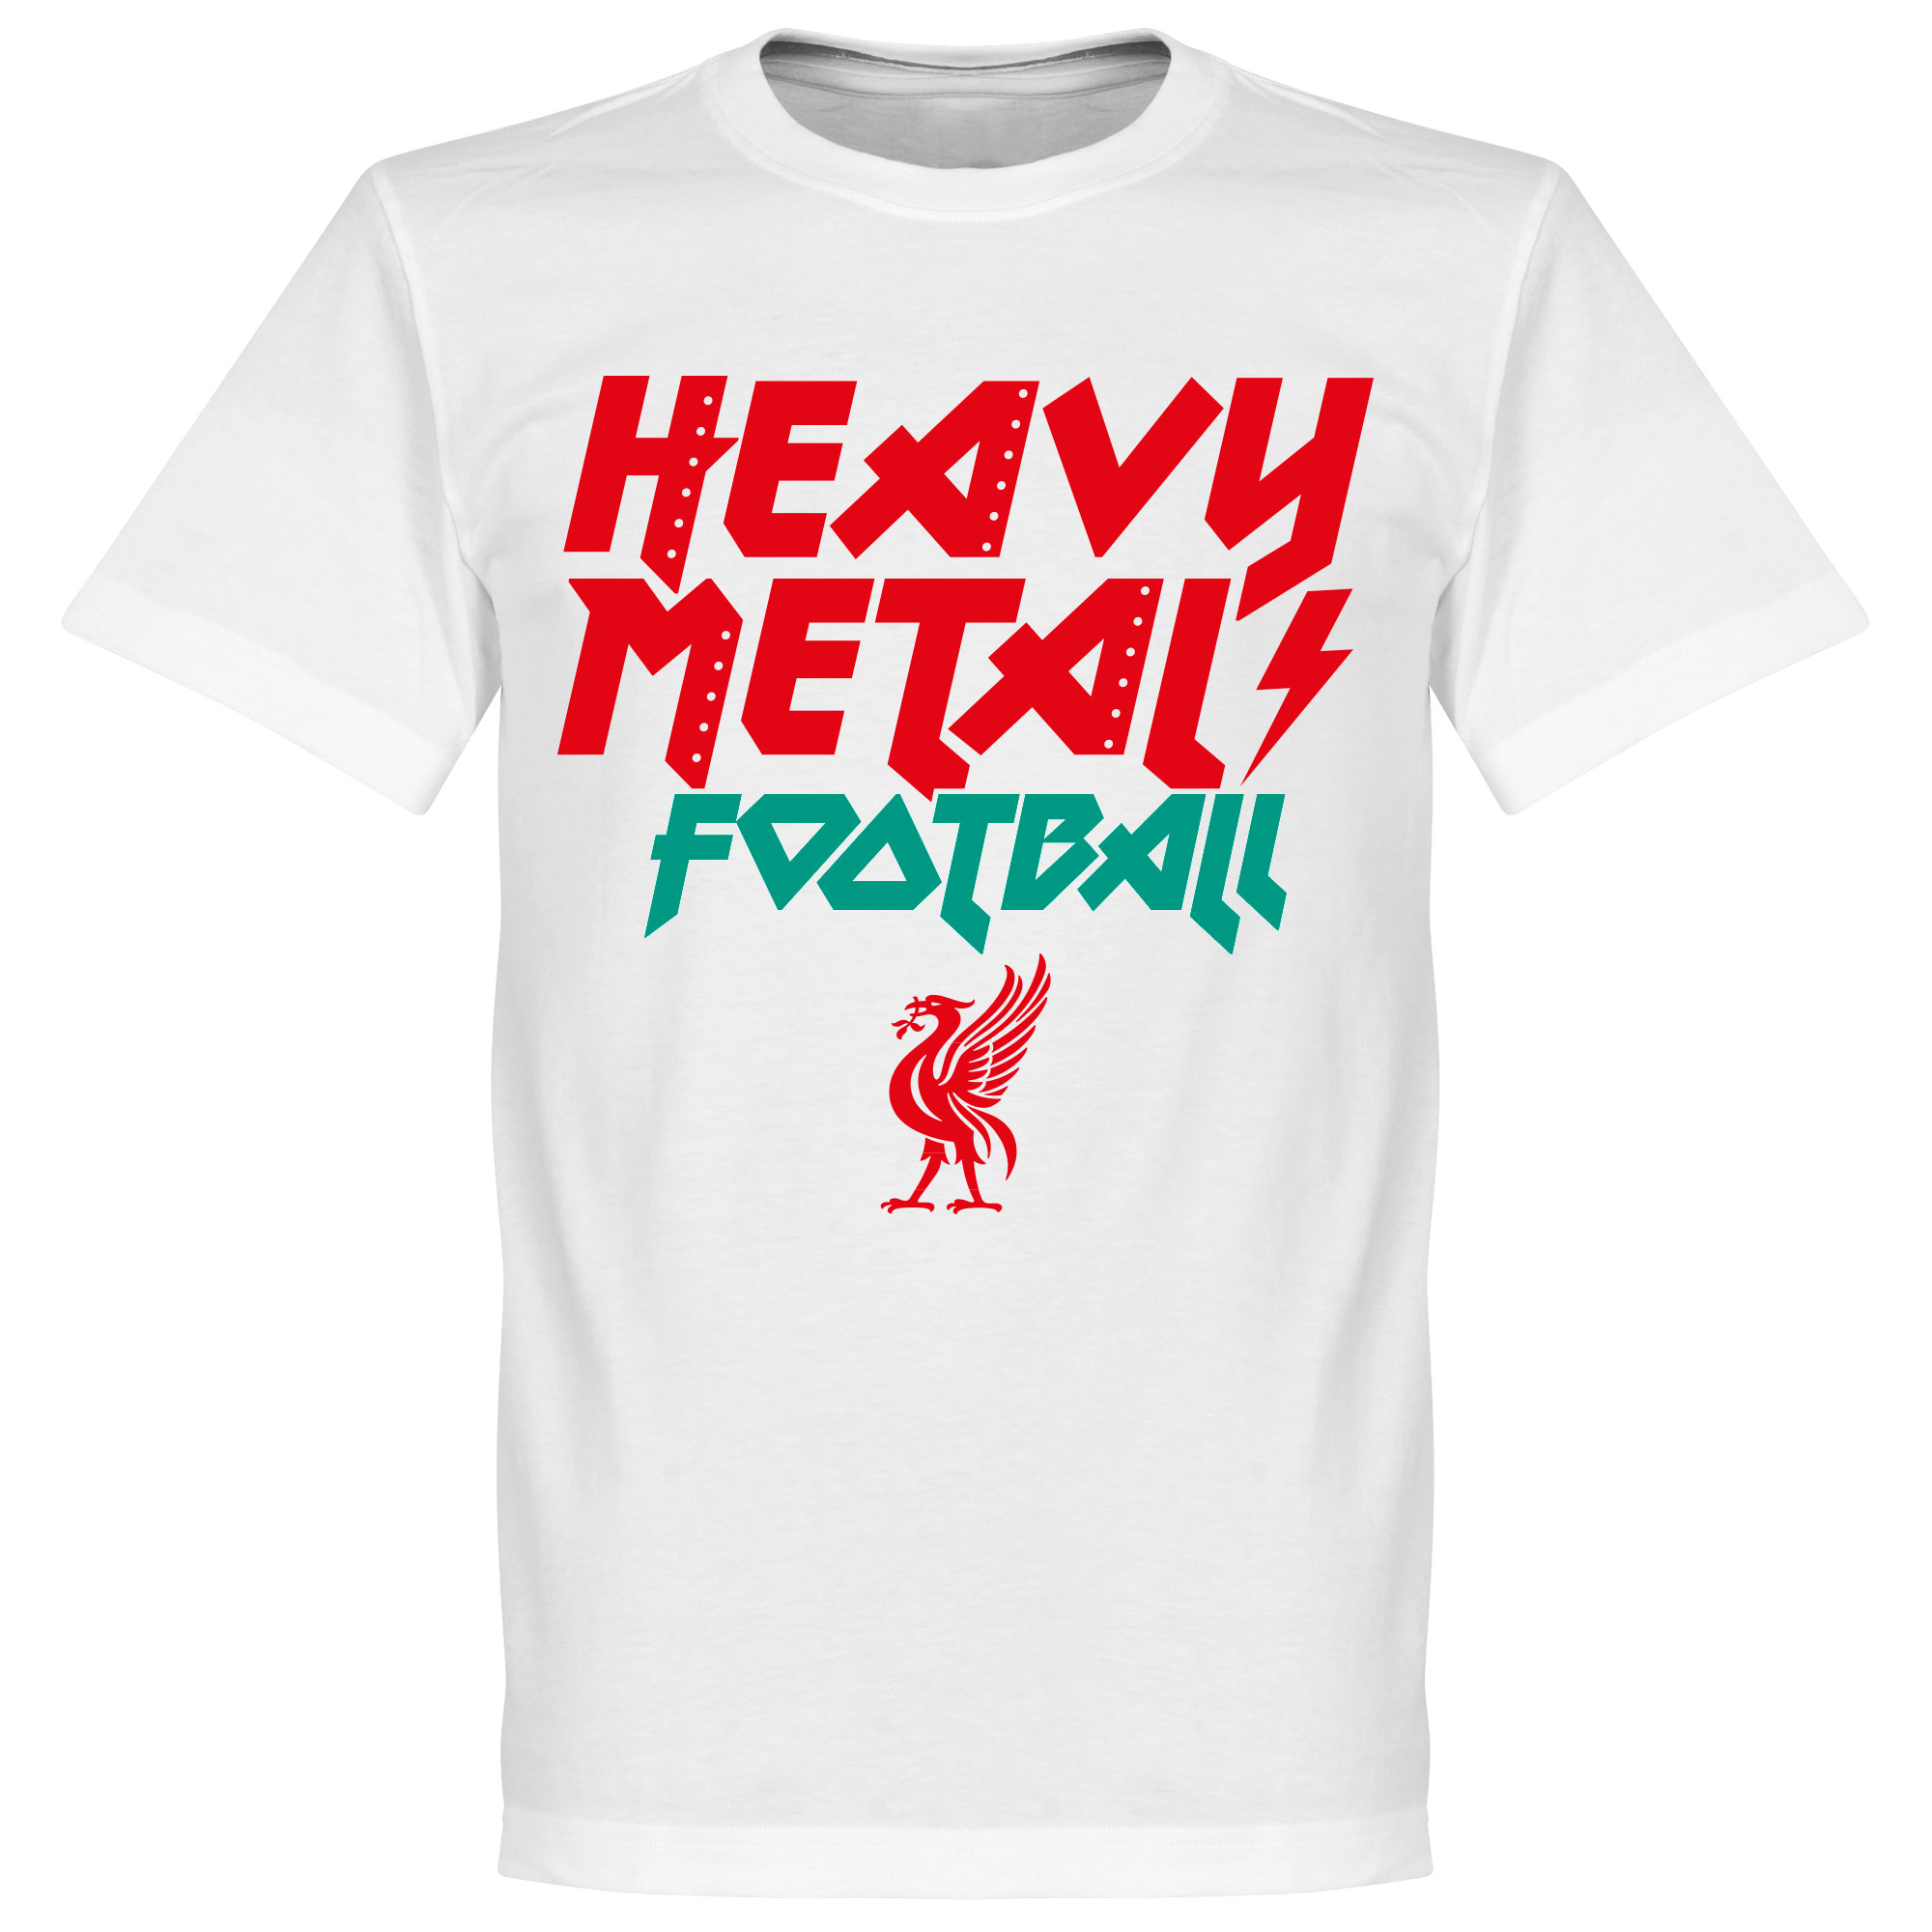 Heavy Metal Football Tee - White - XS